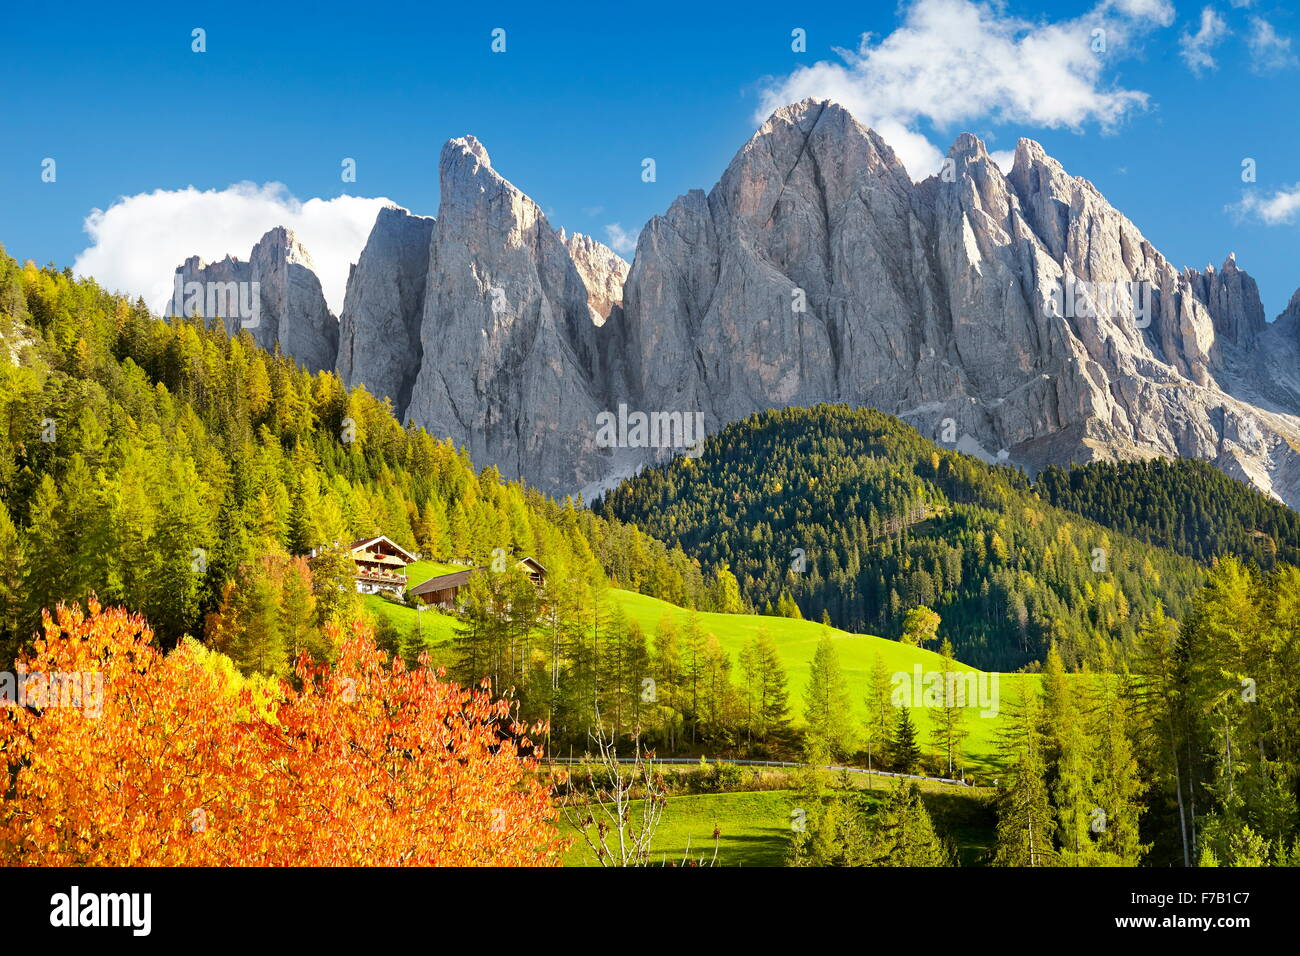 Autumn landscape in Dolomites Mountains, Val Di Funes, European Alps, Tyrol, Italy - Stock Image